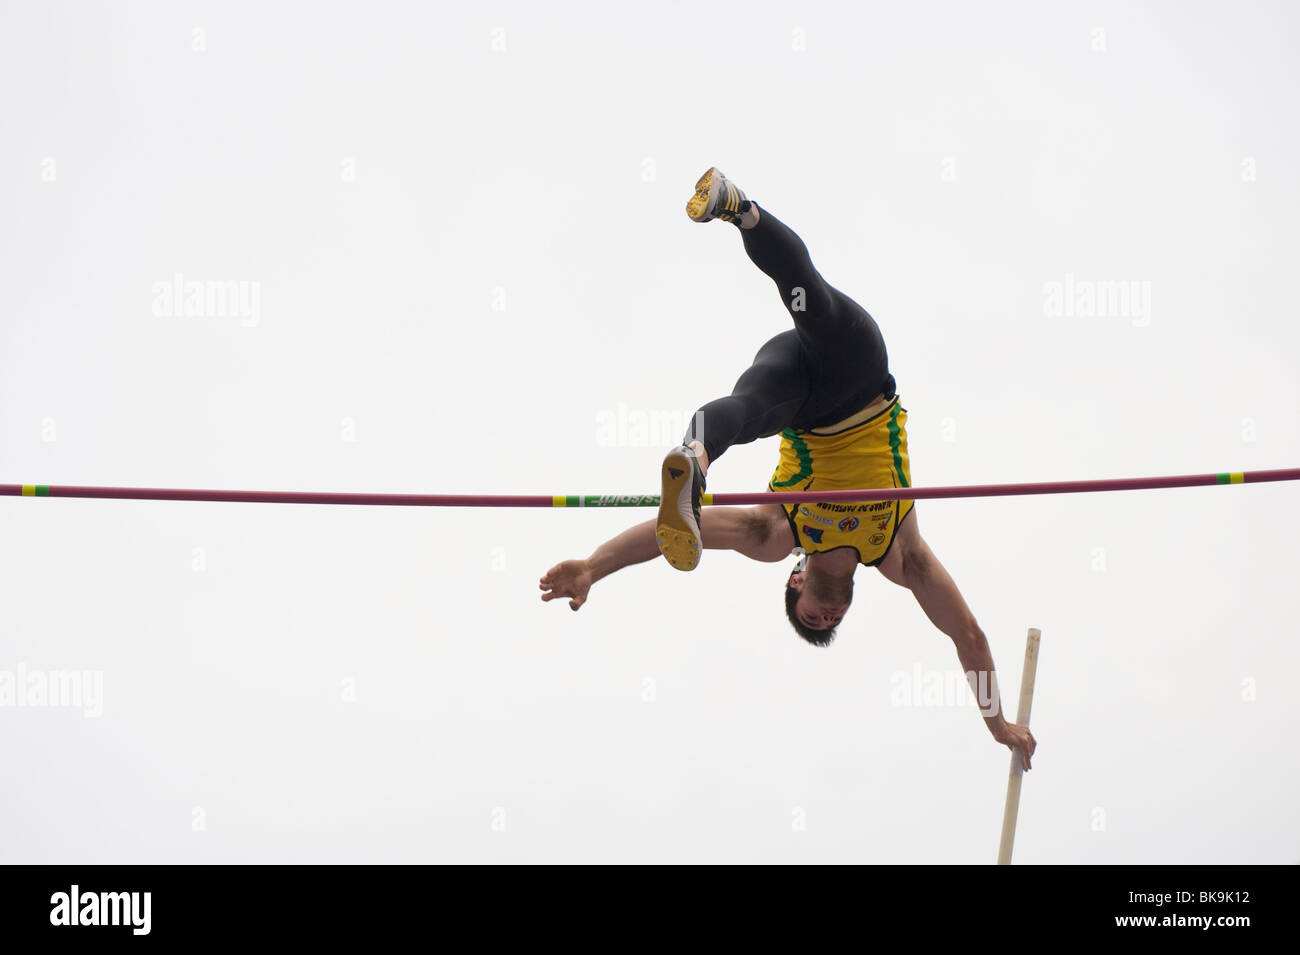 Pole Vaulter attempting to clear the bar, Arc de triomf Competition, Barcelona, Spain. - Stock Image